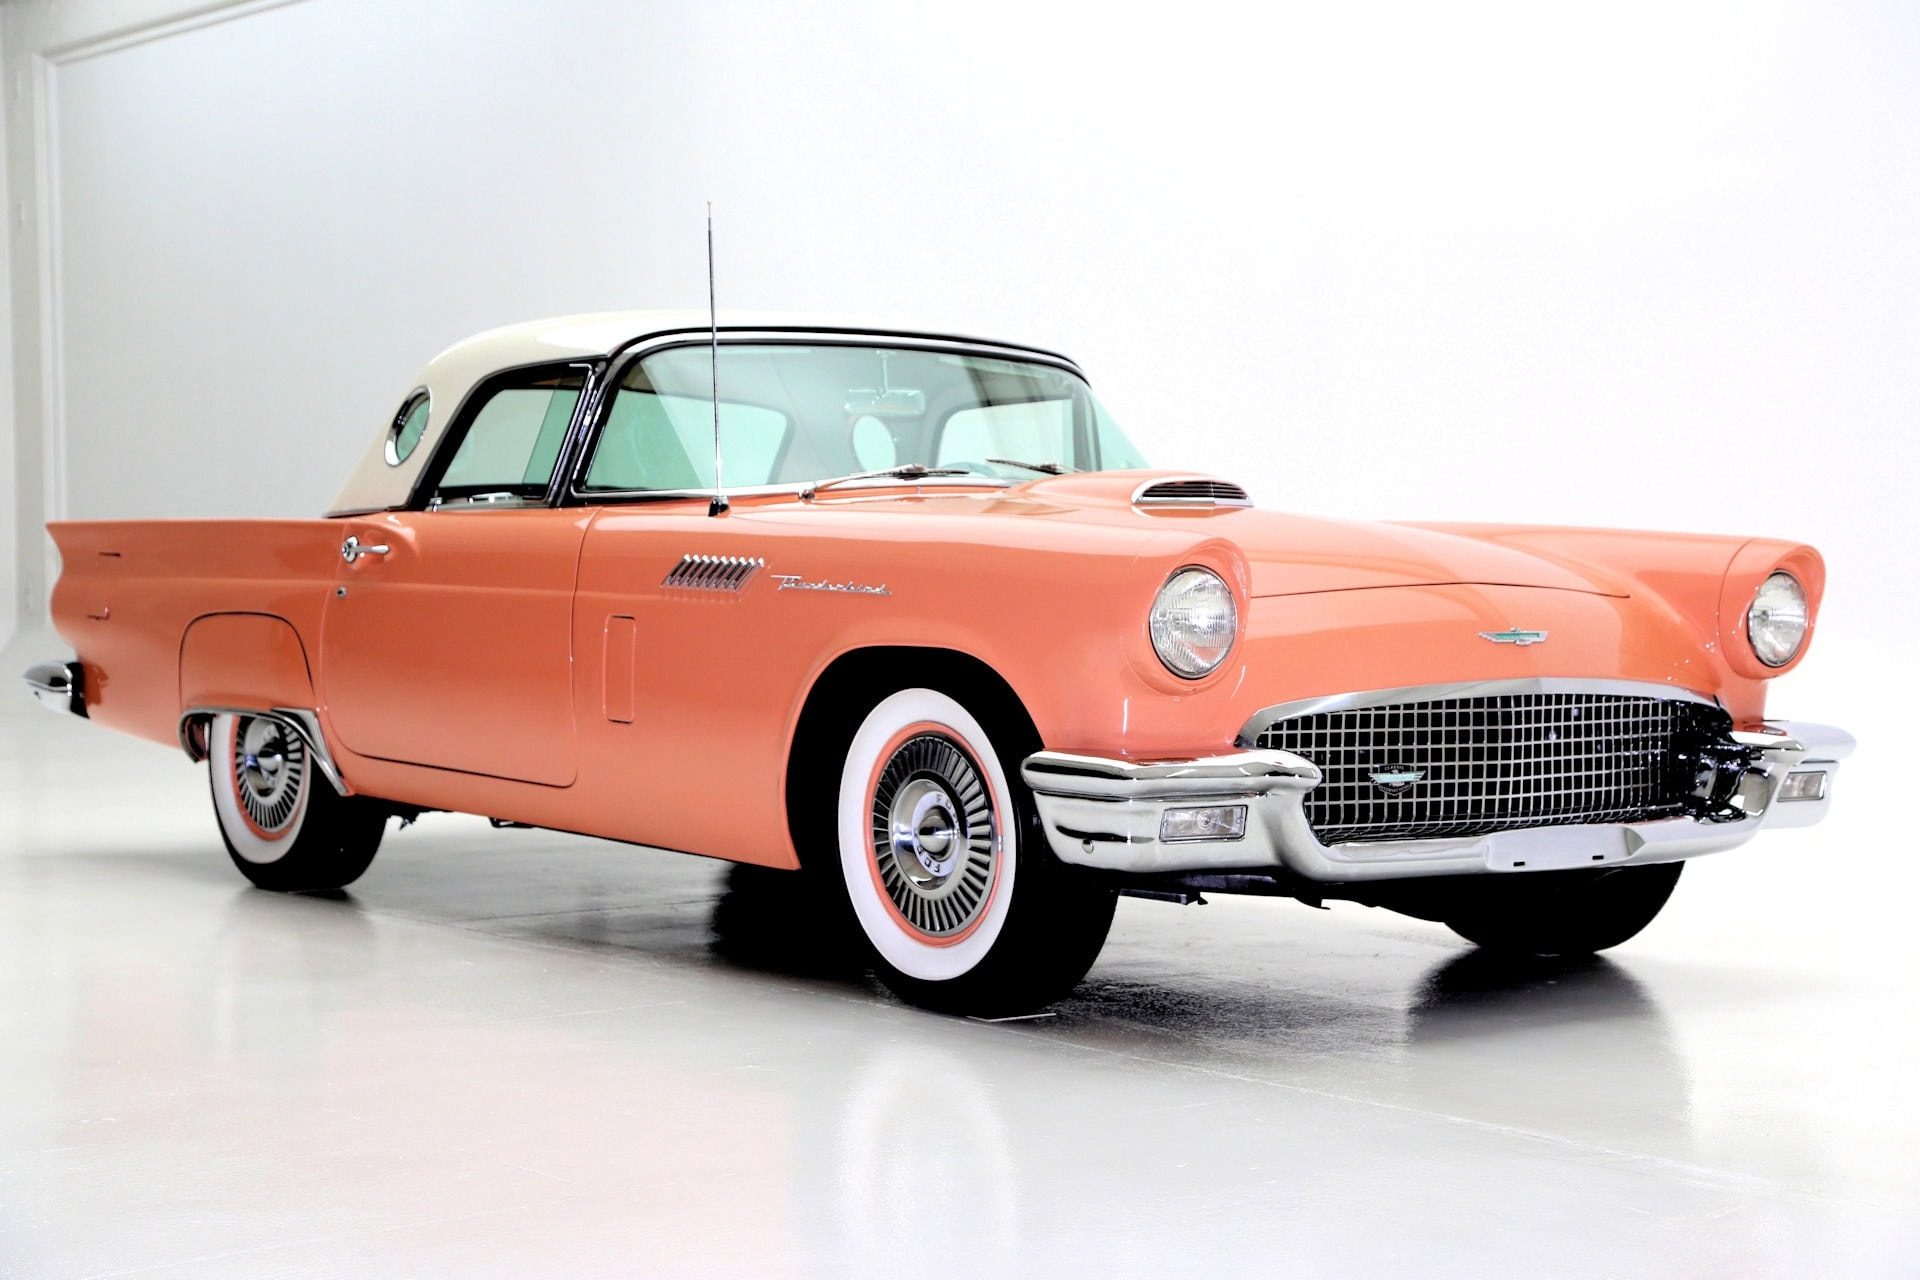 1957 Ford Thunderbird Widescreen for desktop